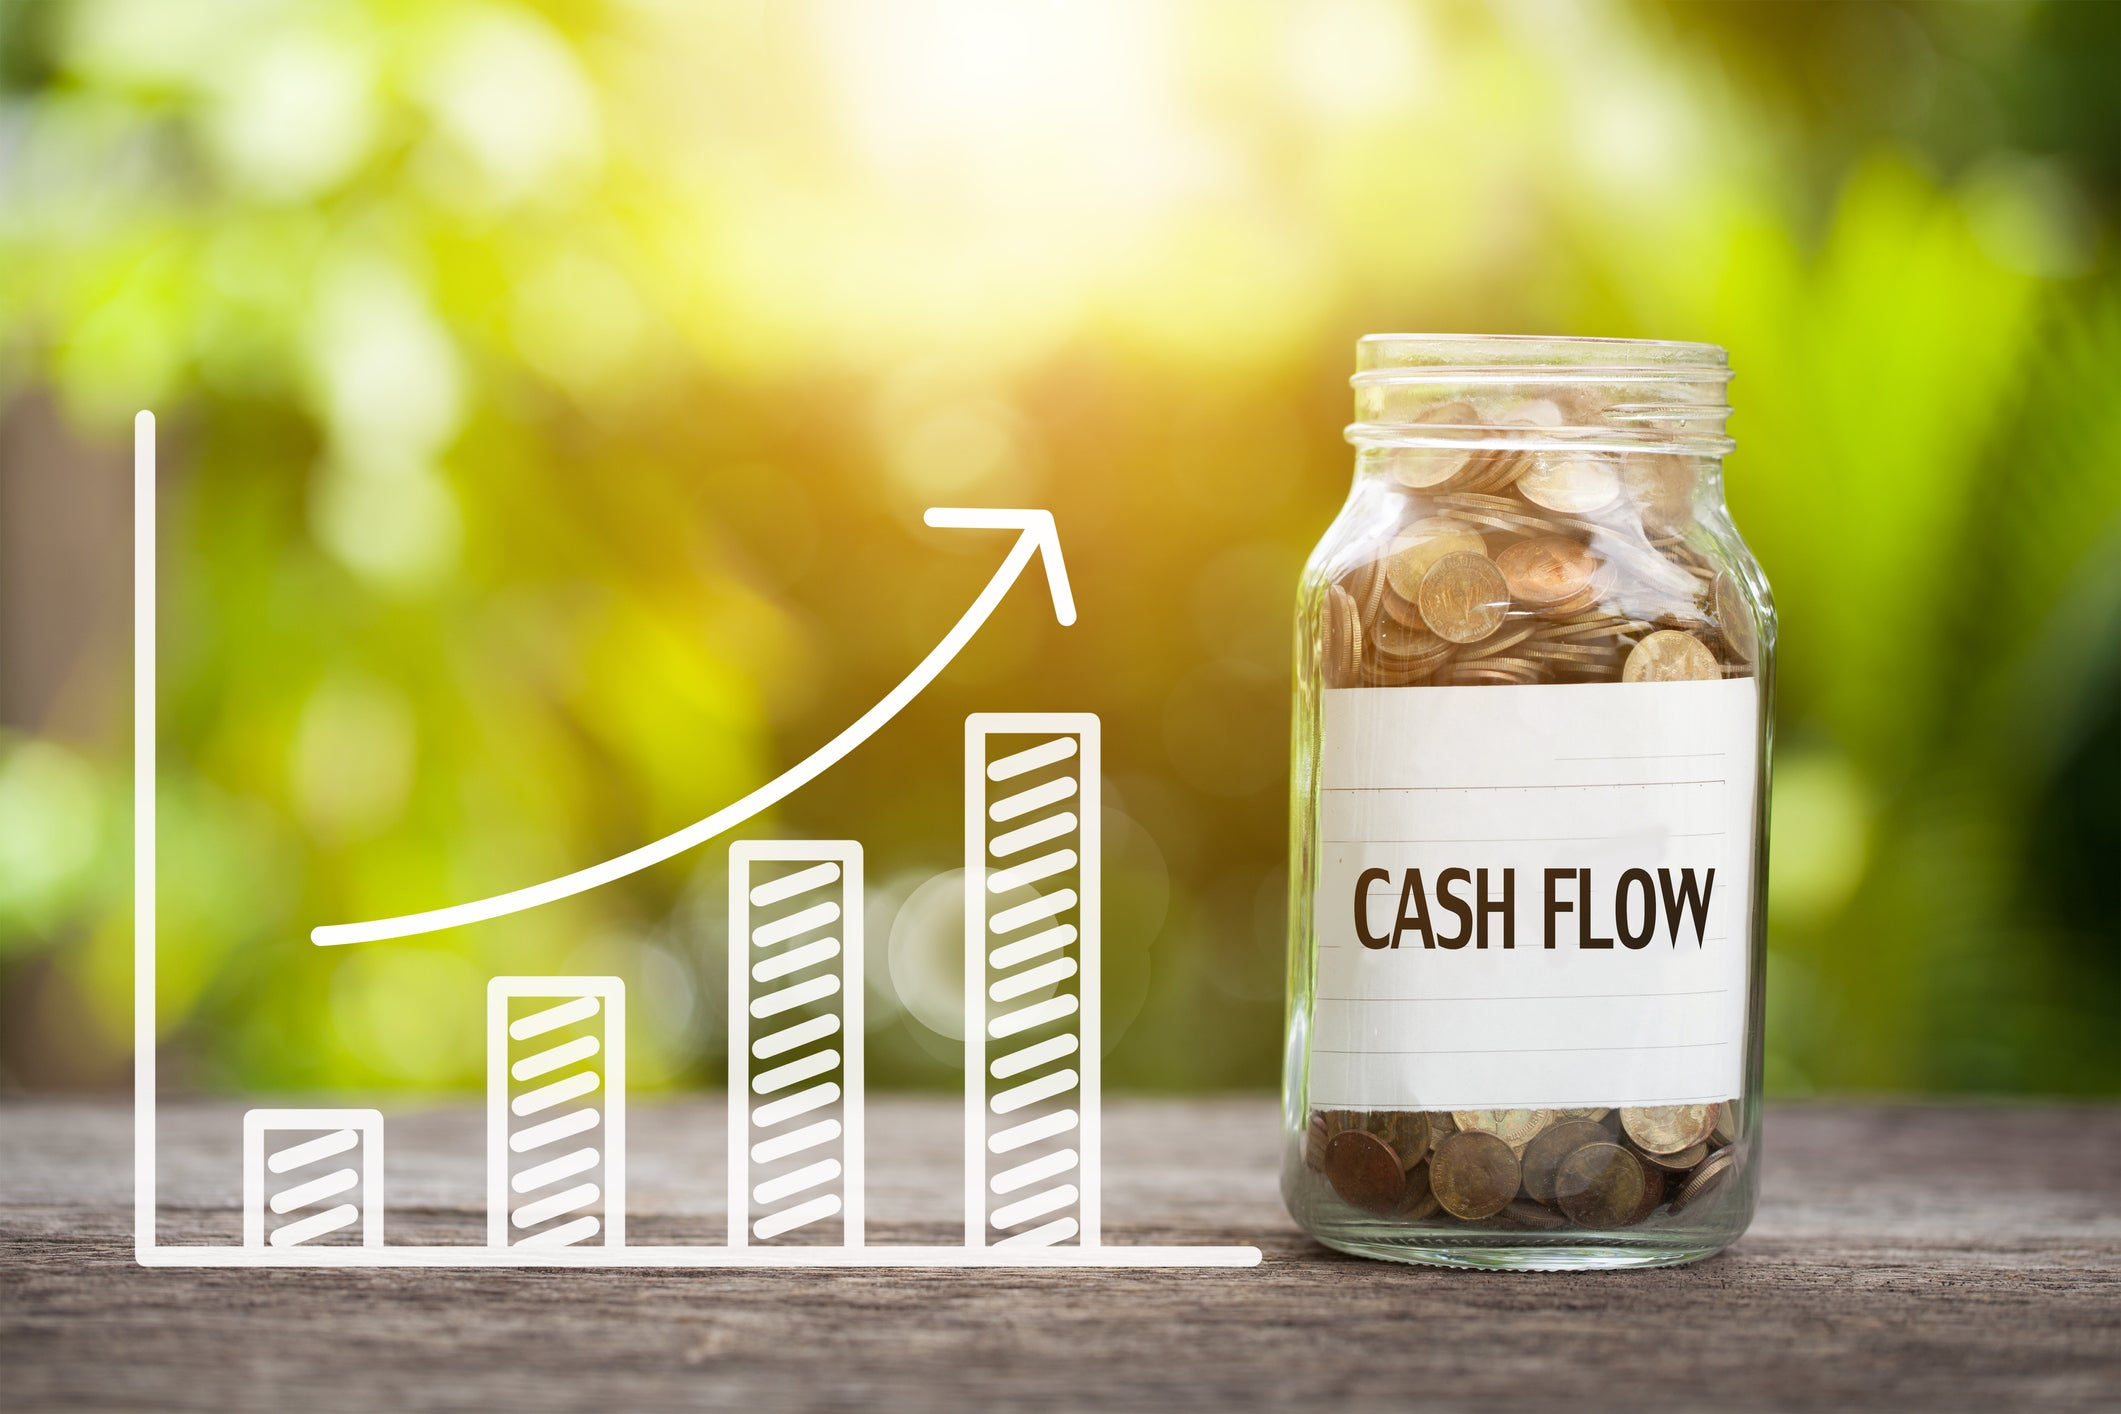 Home Depot Is a Cash Flow Machine: Here's Why